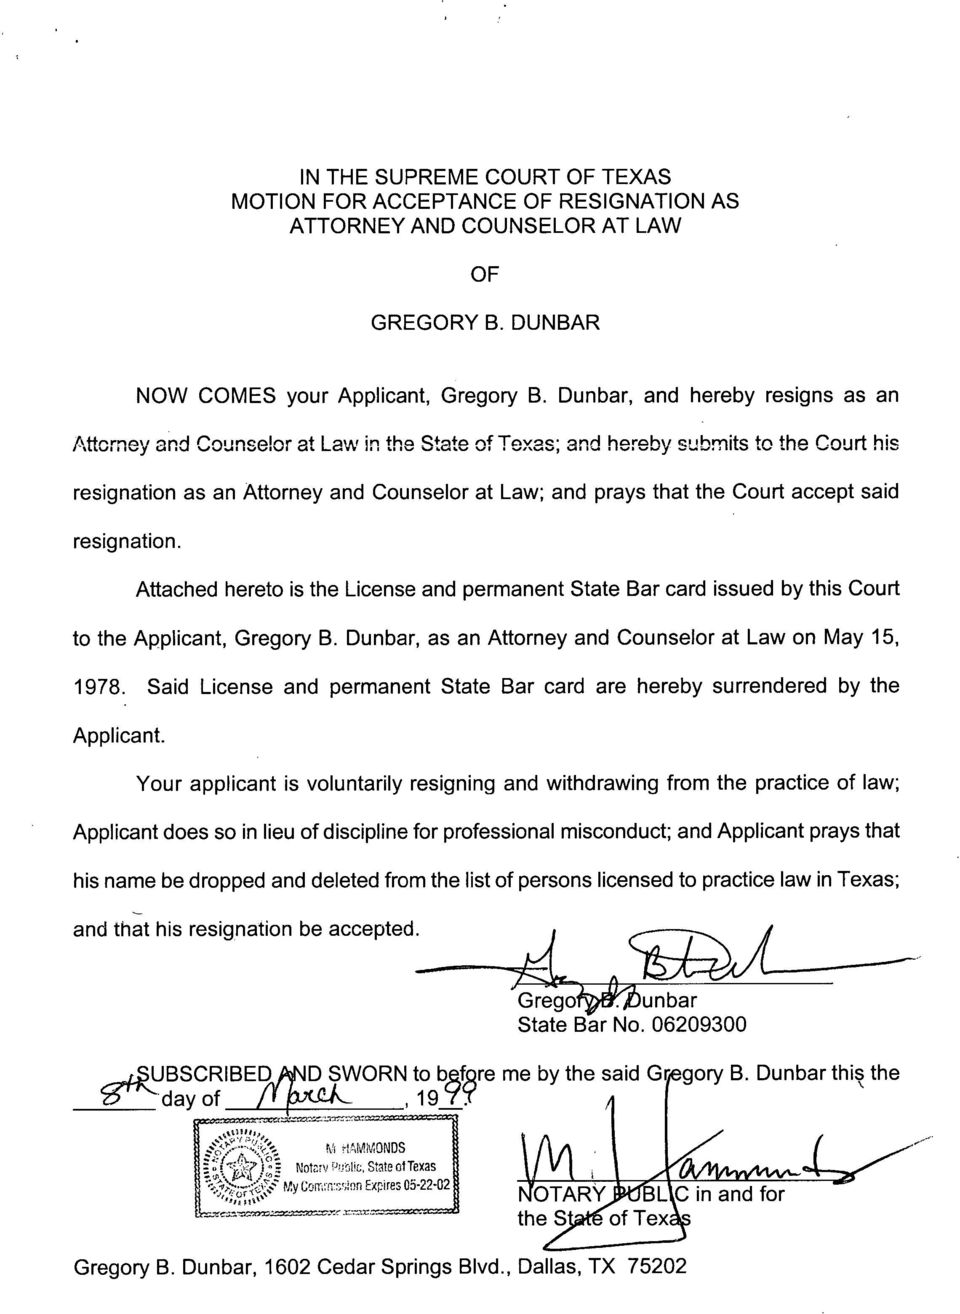 accept said resignation. Attached hereto is the License and permanent State Bar card issued by this Court to the Applicant, Gregory B. Dunbar, as an Attorney and Counselor at Law on May 15, 1978.